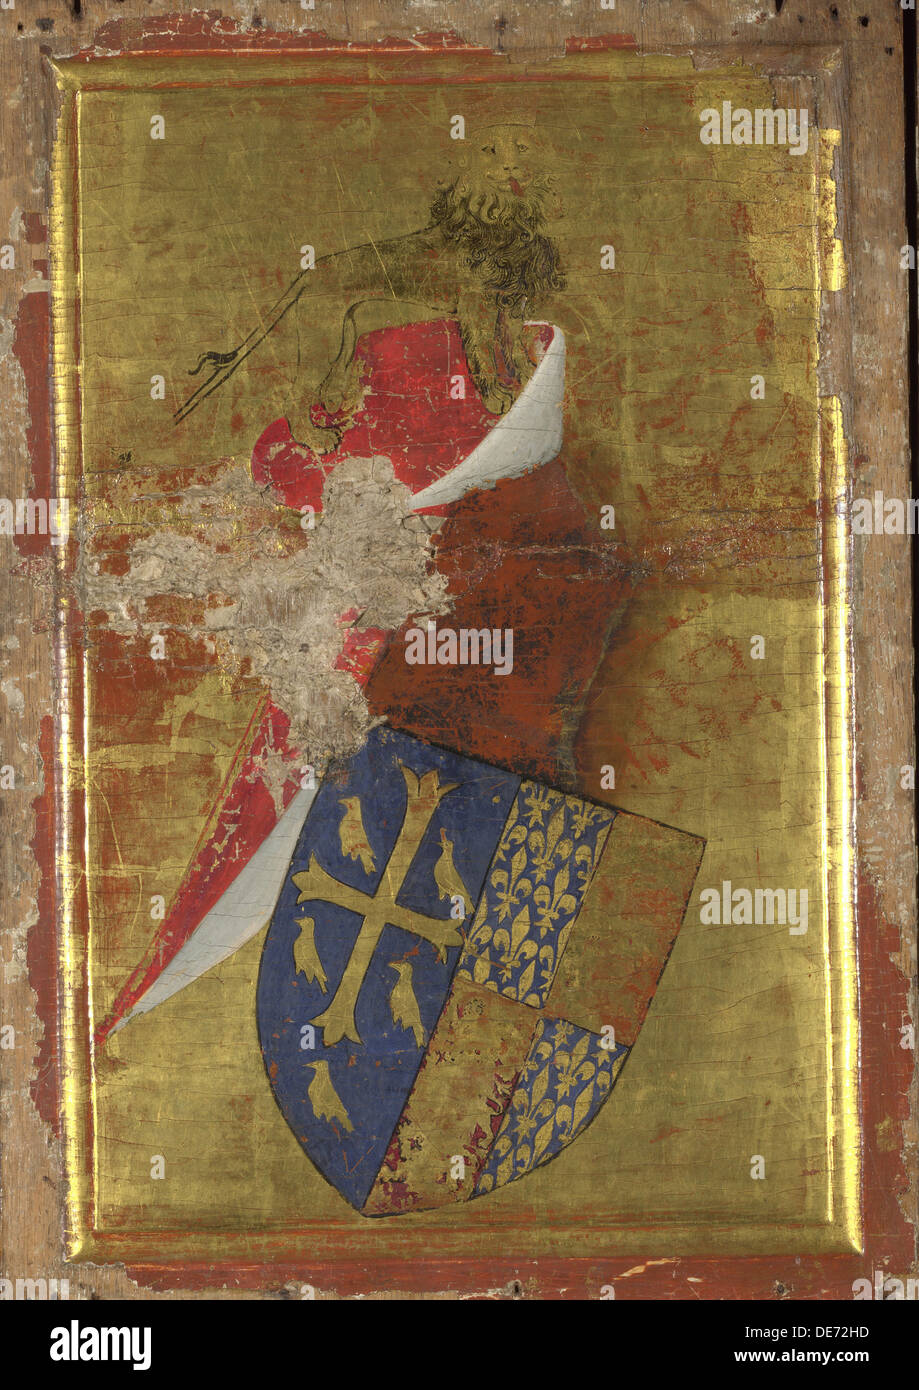 The coat of arms of Richard II of England (The outside panel of the Wilton Diptych), Between 1395 and 1399. Artist: Wilton Maste - Stock Image